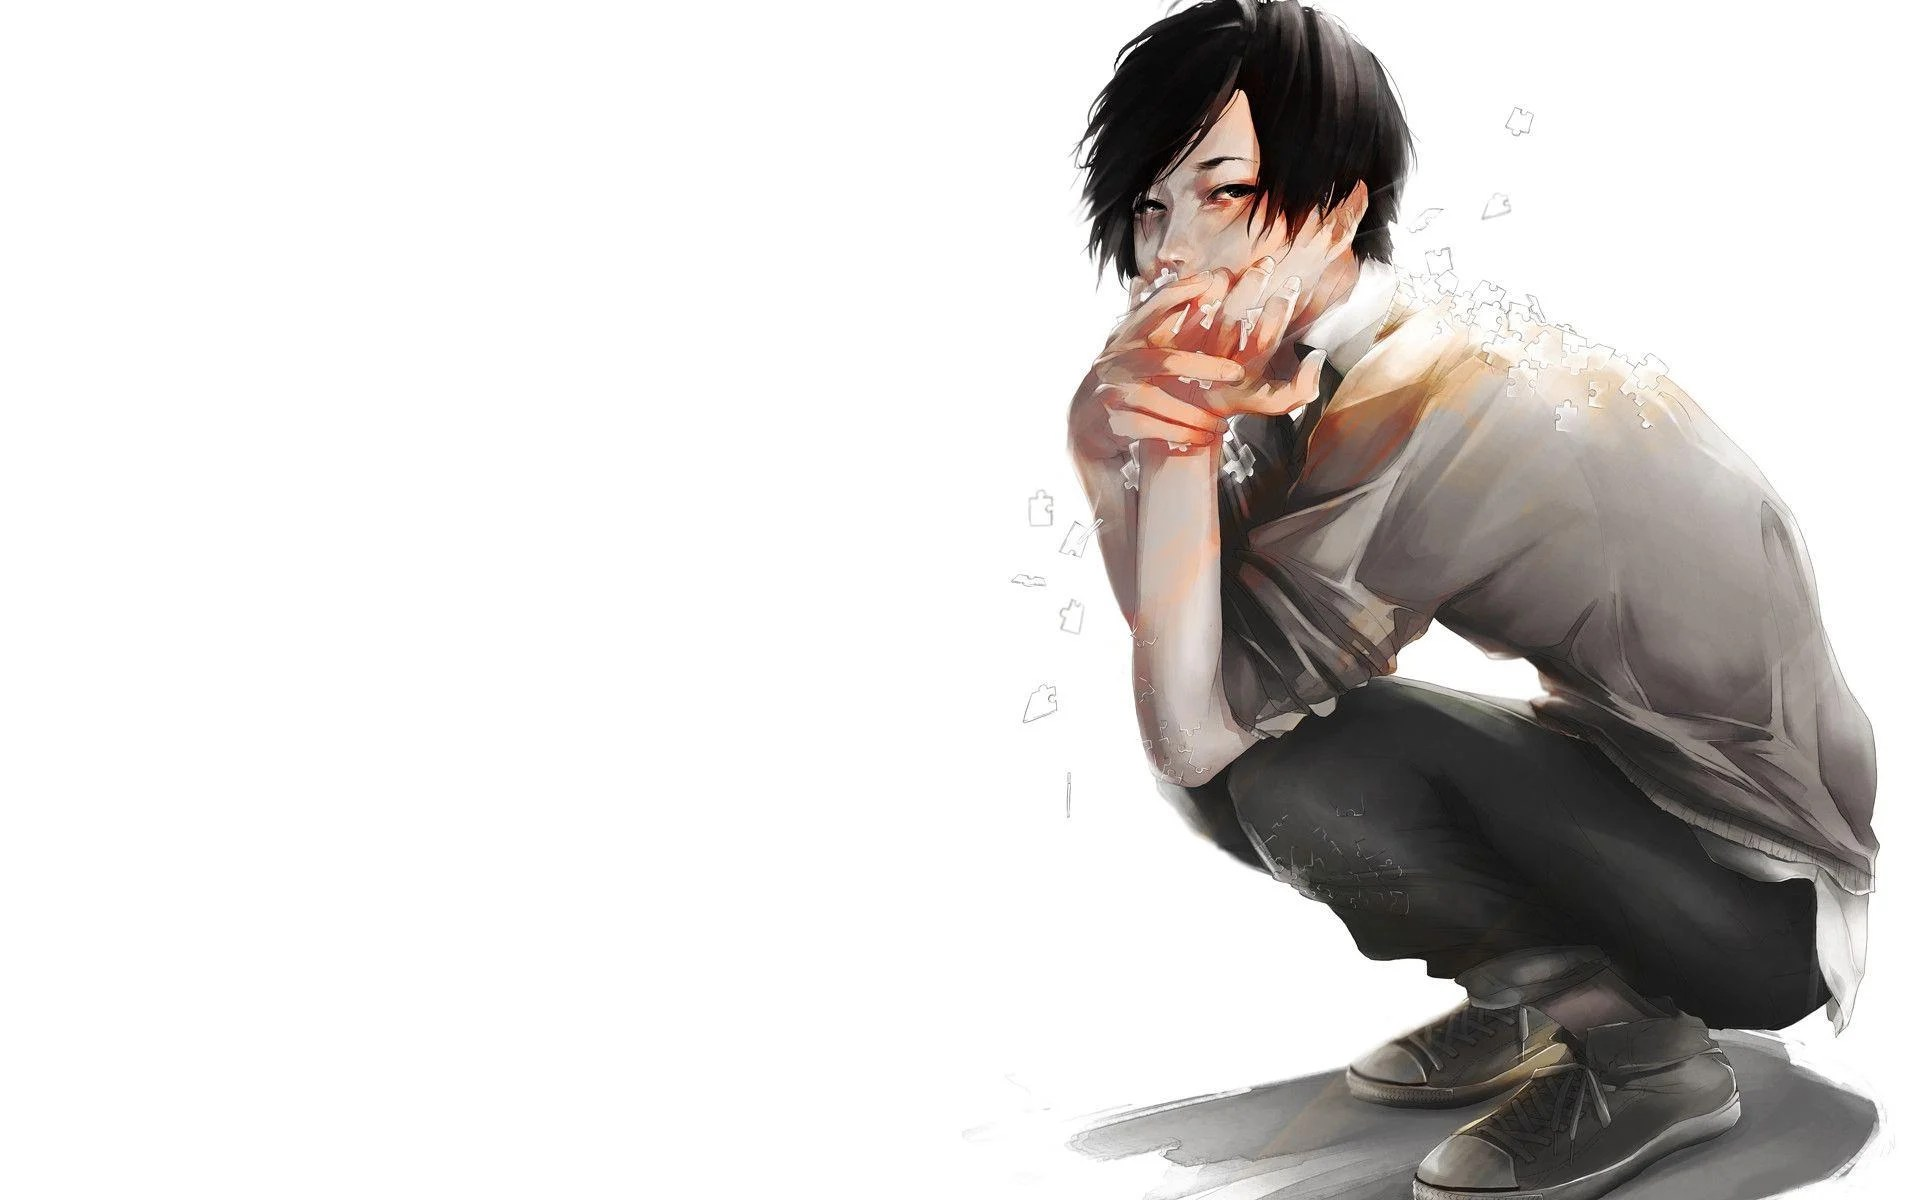 70 sad anime wallpapers images in full hd, 2k and 4k sizes. Sad Boy Anime Wallpapers - Wallpaper Cave